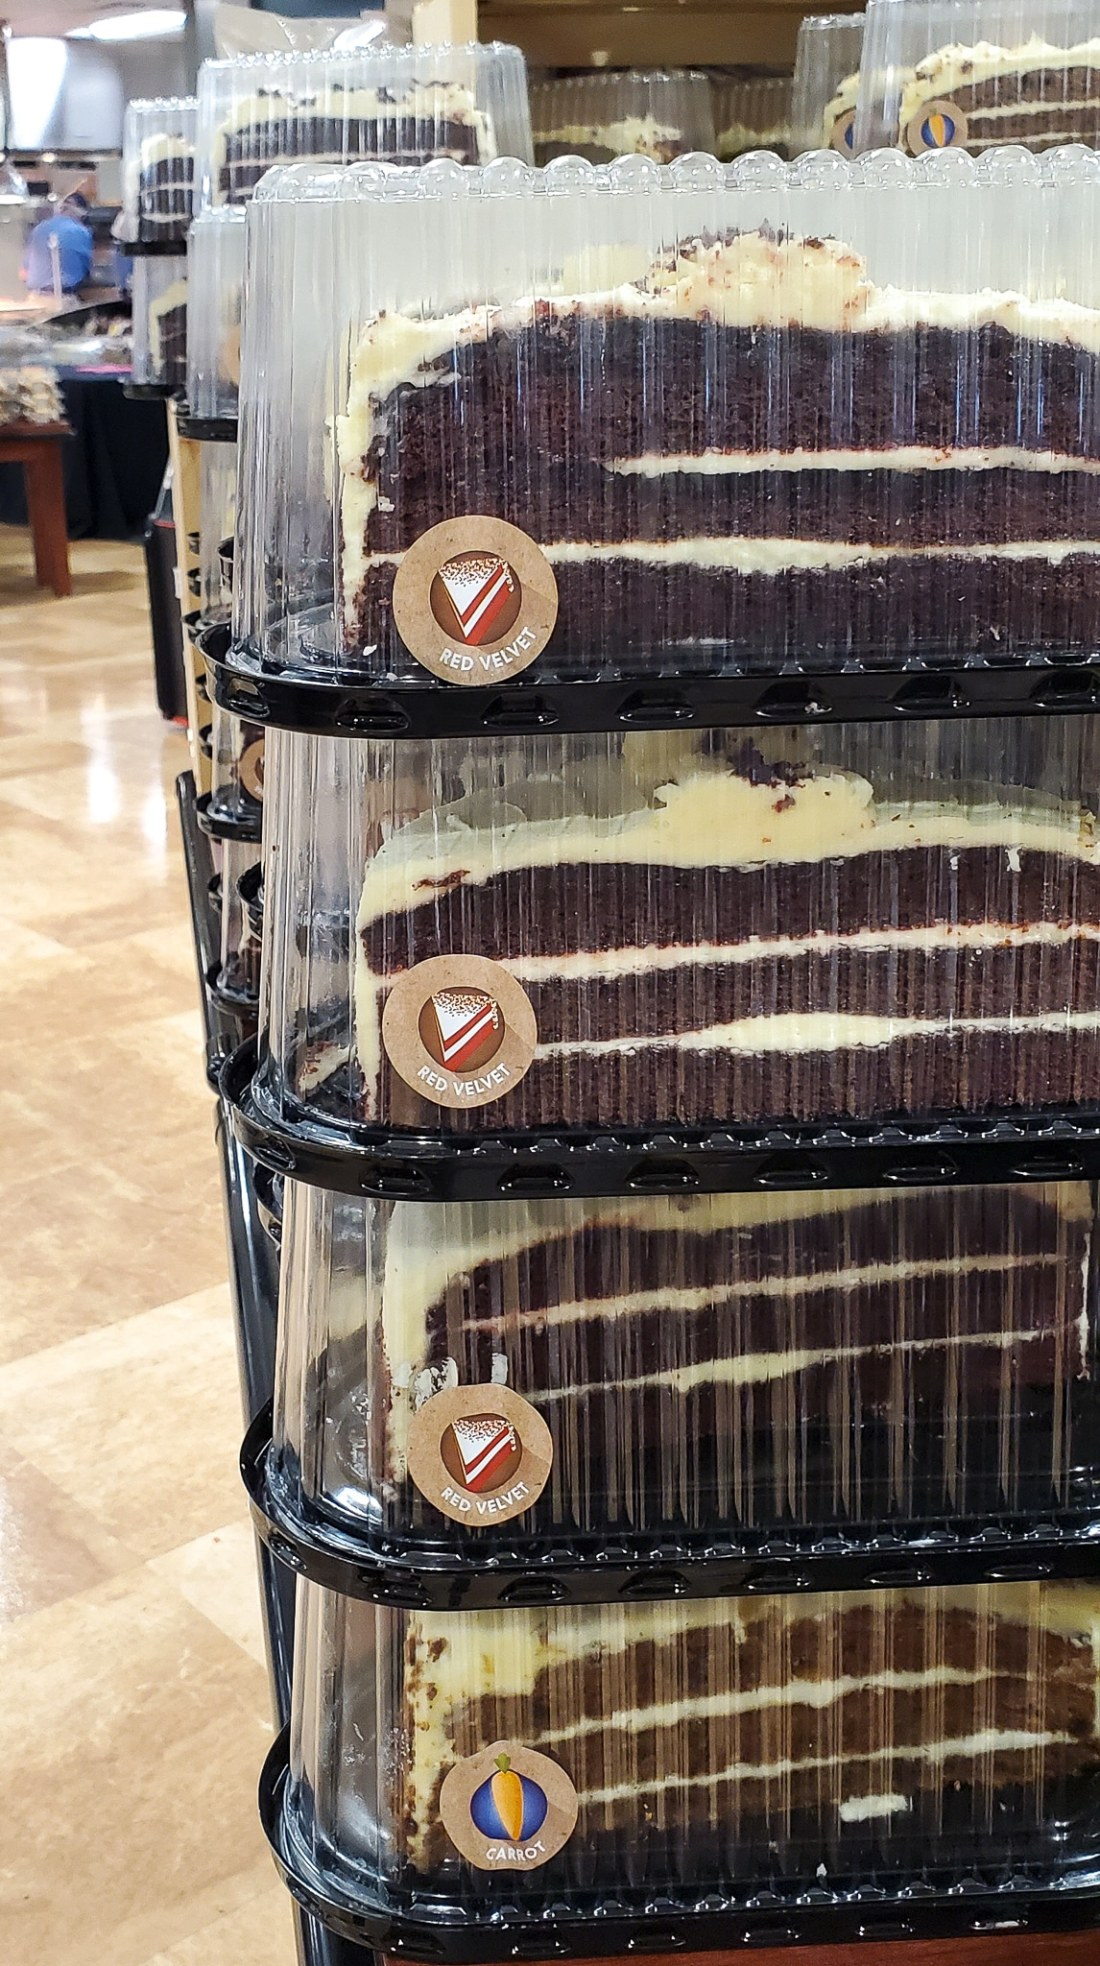 Harris Teeter Bakery Cake. Grab a delicious deal at your local Harris Teeter. Grab a freshly baked half of a cake for $5.99.